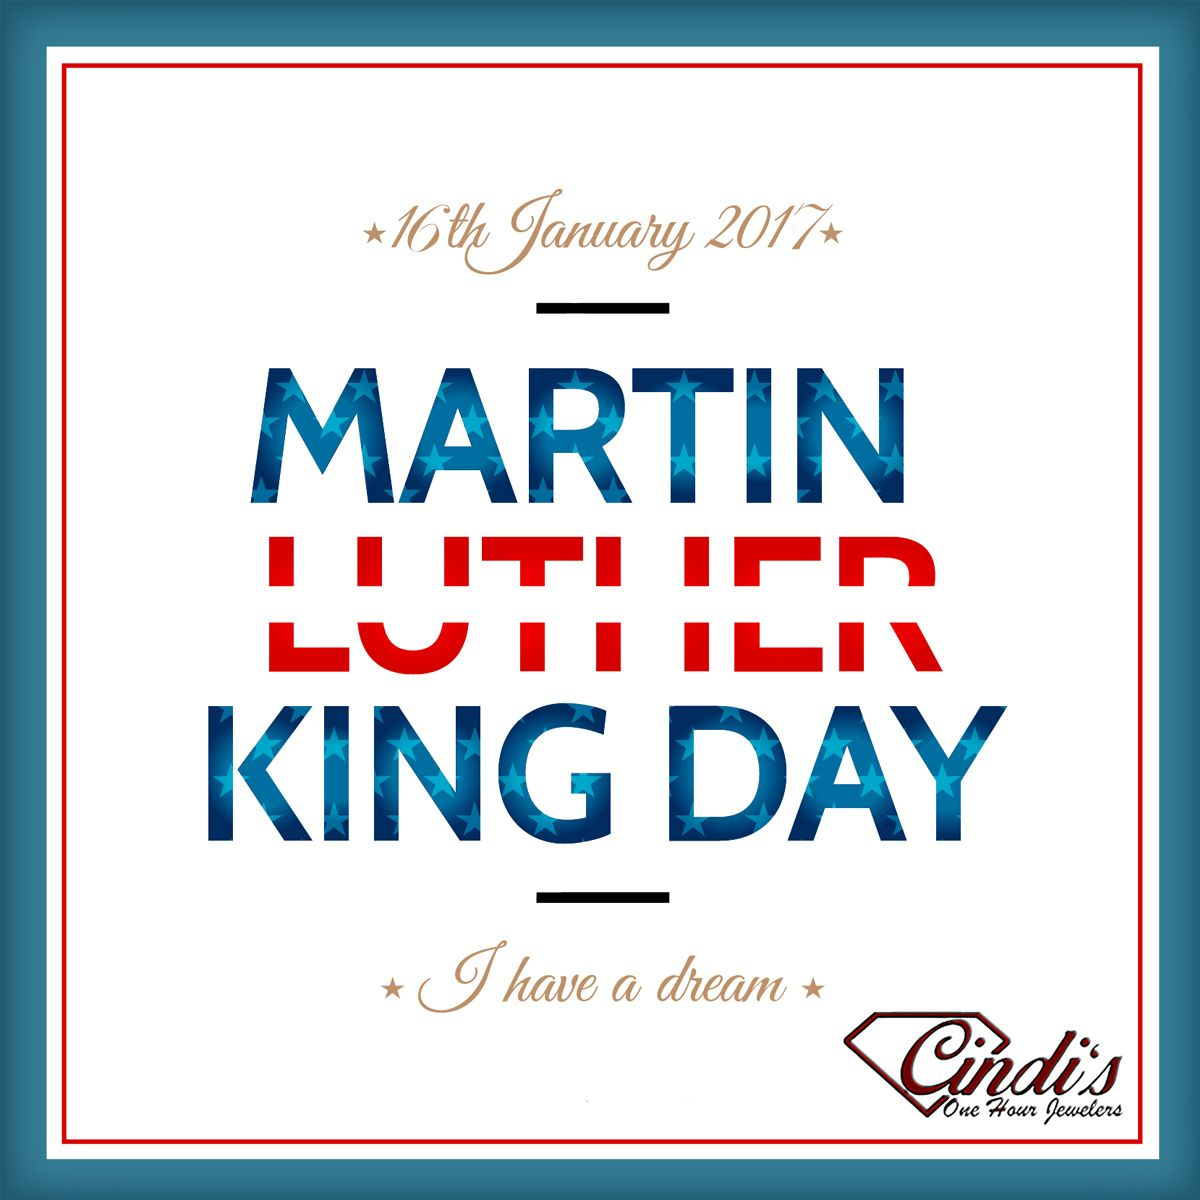 Martin Luther King Day Amazing Quotes Adorable Quotes Quotes